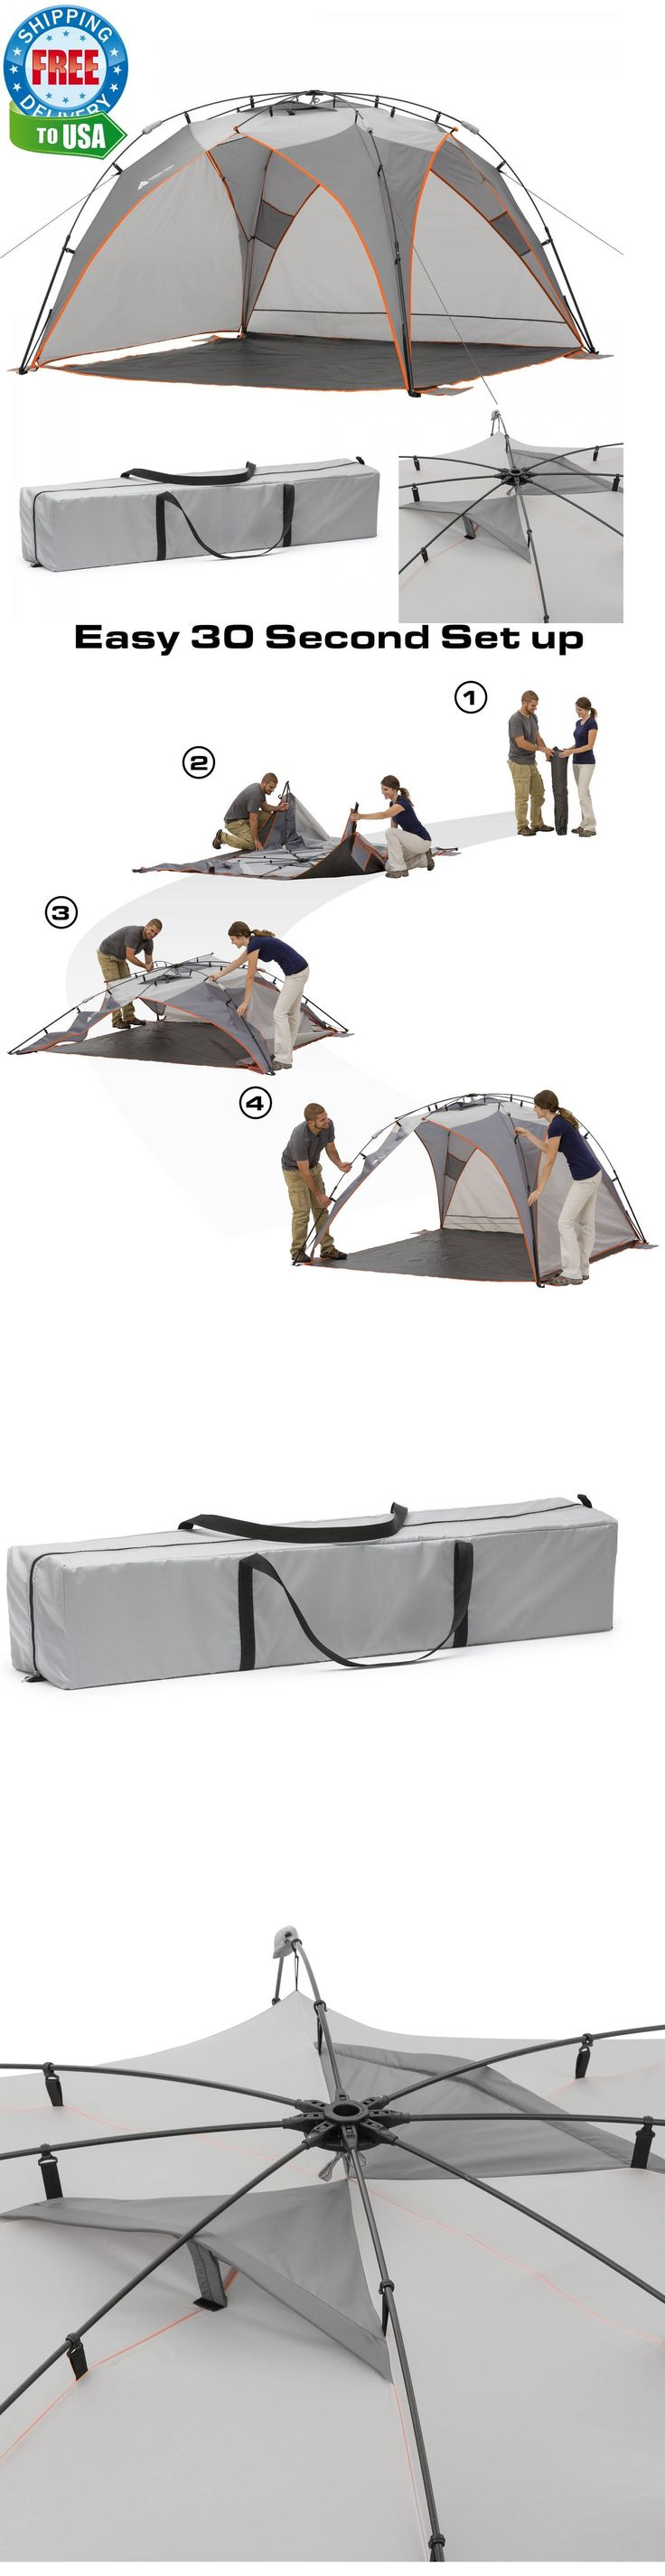 Canopies and Shelters 179011: Screen House Outdoor Canopy Shade Beach Gazebo Instant Pop Up Camping Tent 8 Ft -> BUY IT NOW ONLY: $74.58 on eBay!